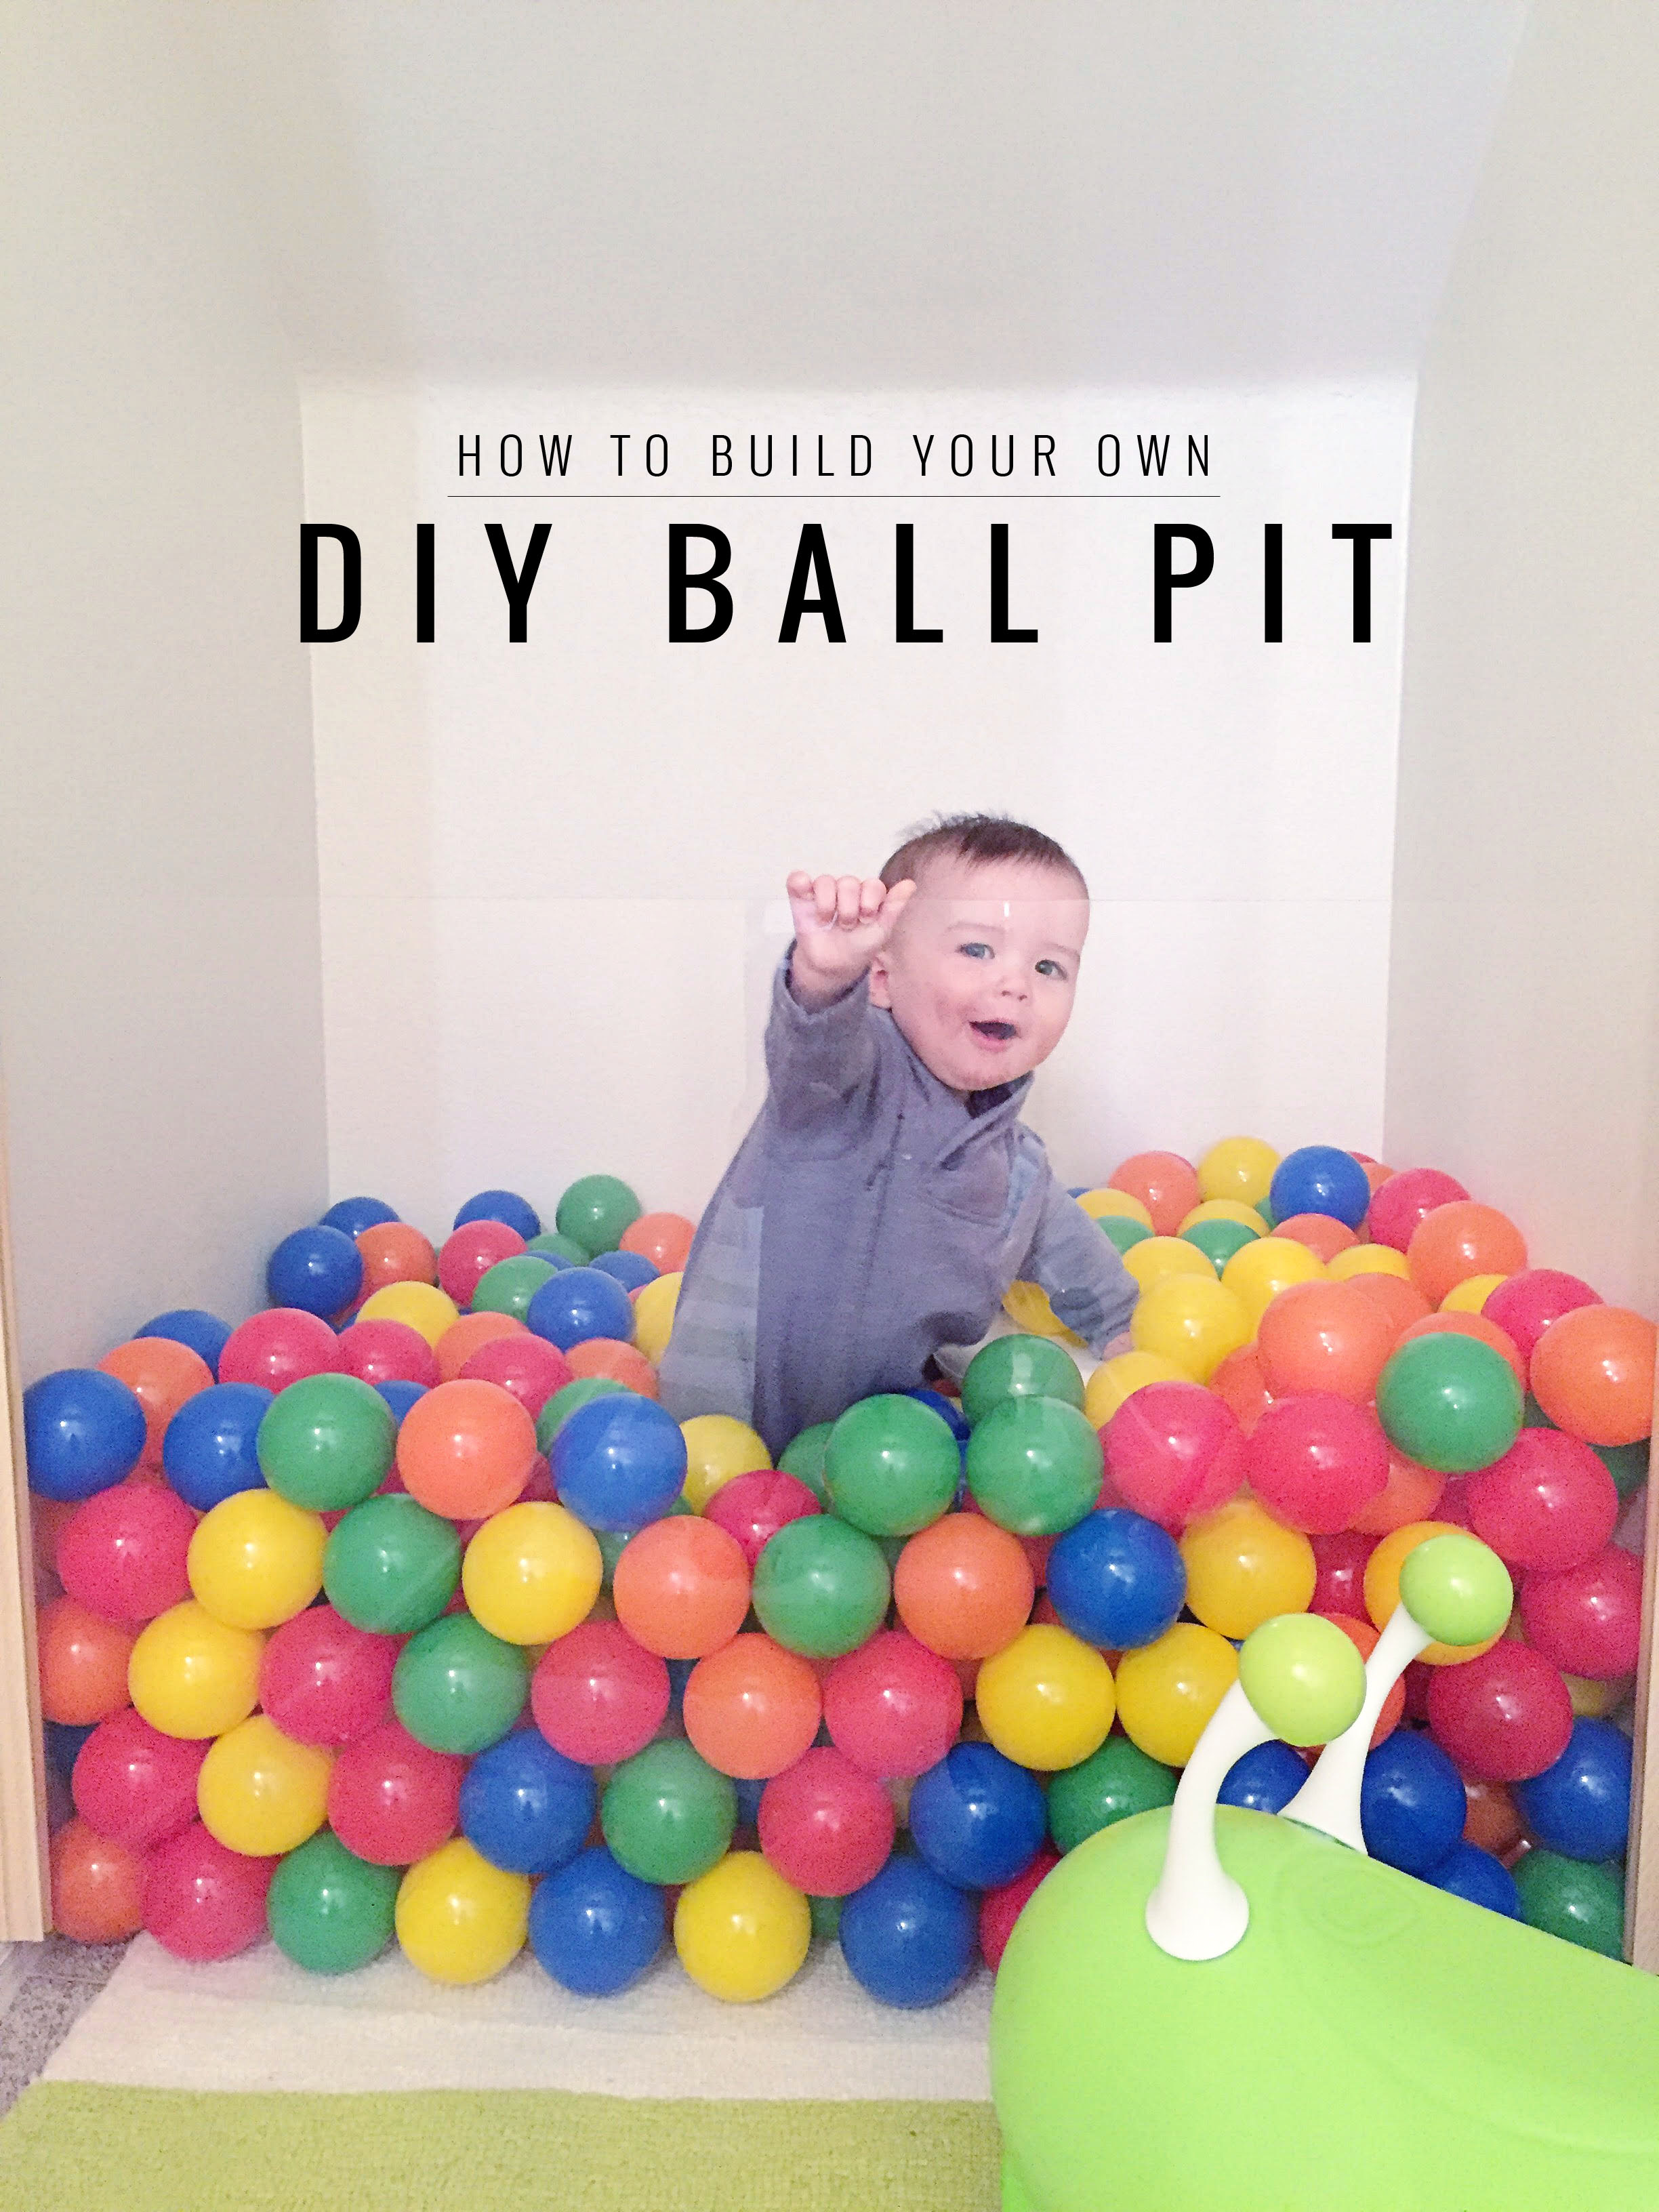 How to build a ball pit | Momma Society-The Community of Modern Moms | www.mommasociety.com | Join our party on instagram @mommasociety